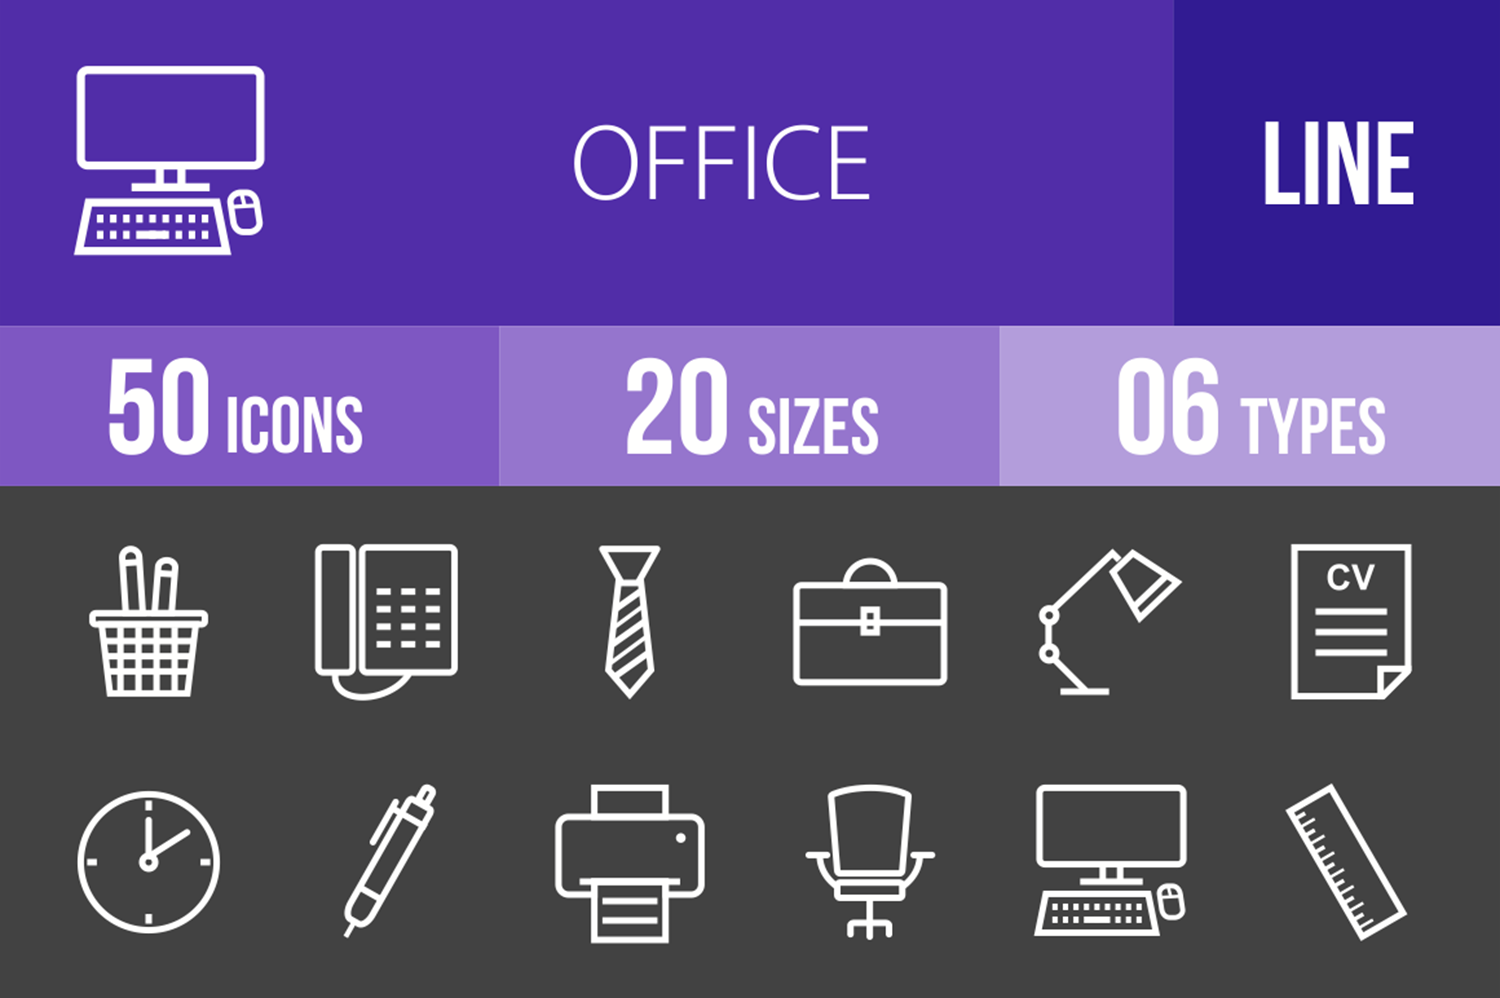 50 Office Line Inverted Icons example image 1